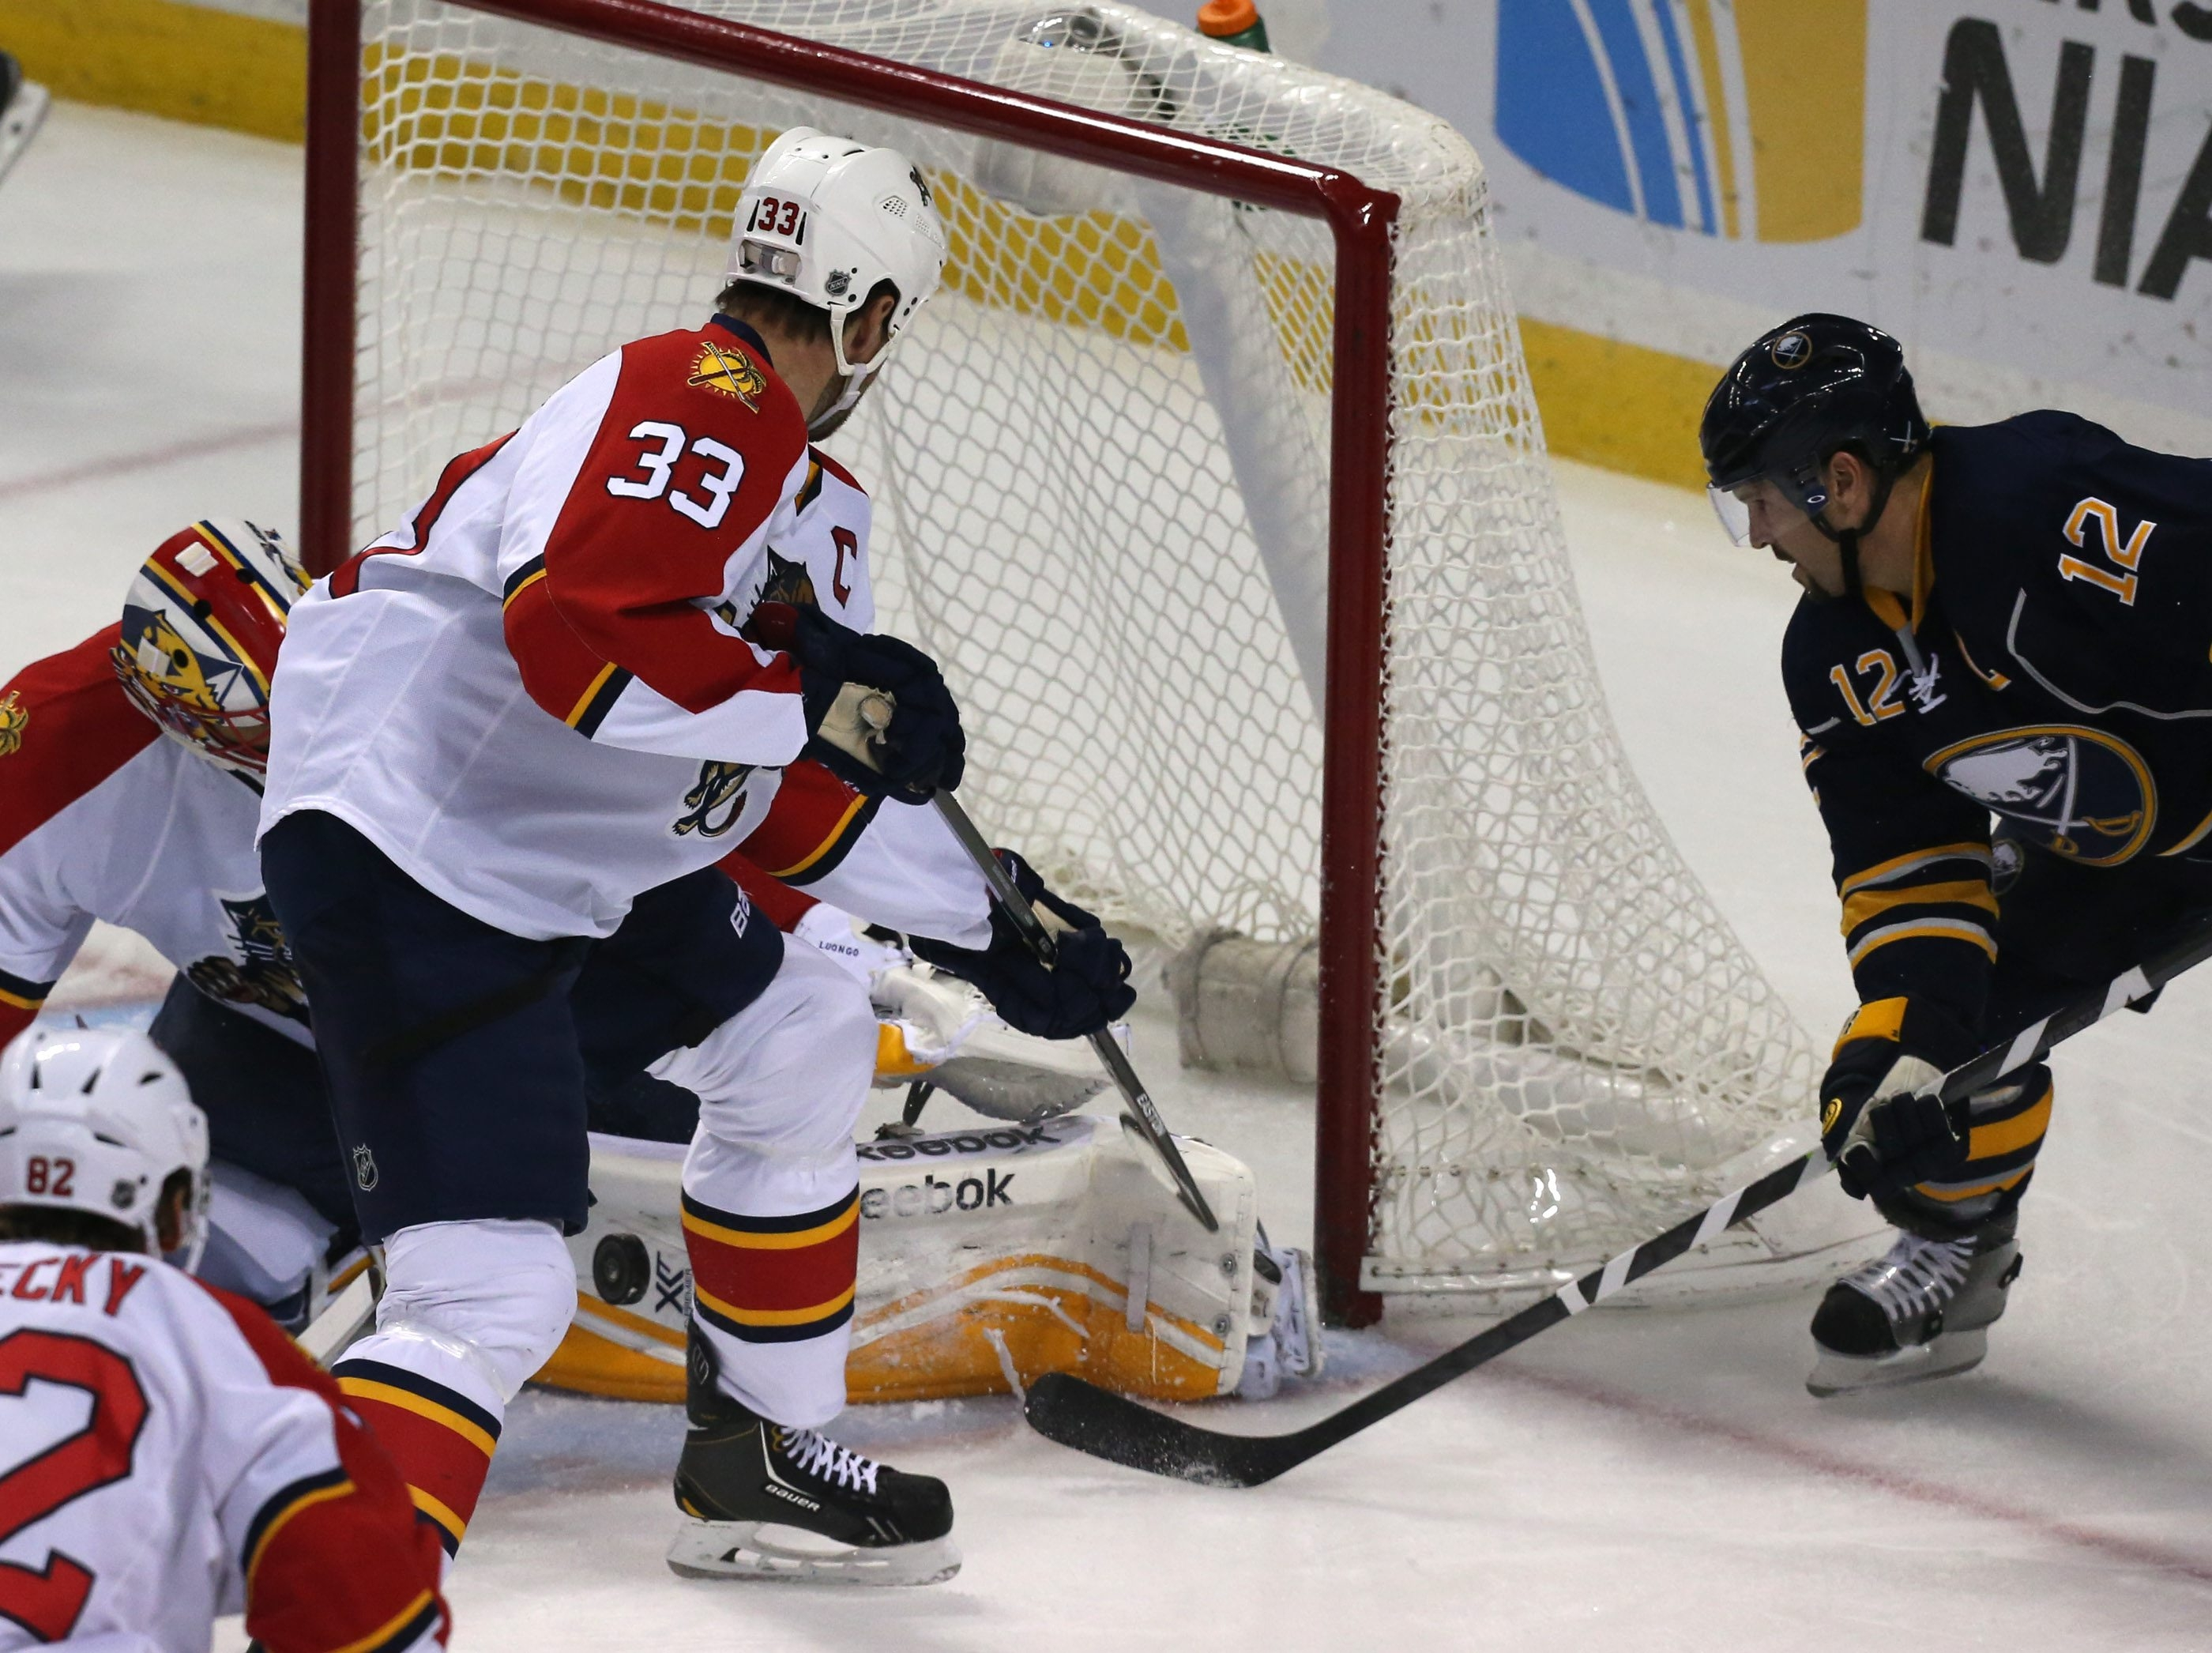 Sabres captain Brian Gionta said the team is getting scoring chances but must find ways to get more goals and more wins.